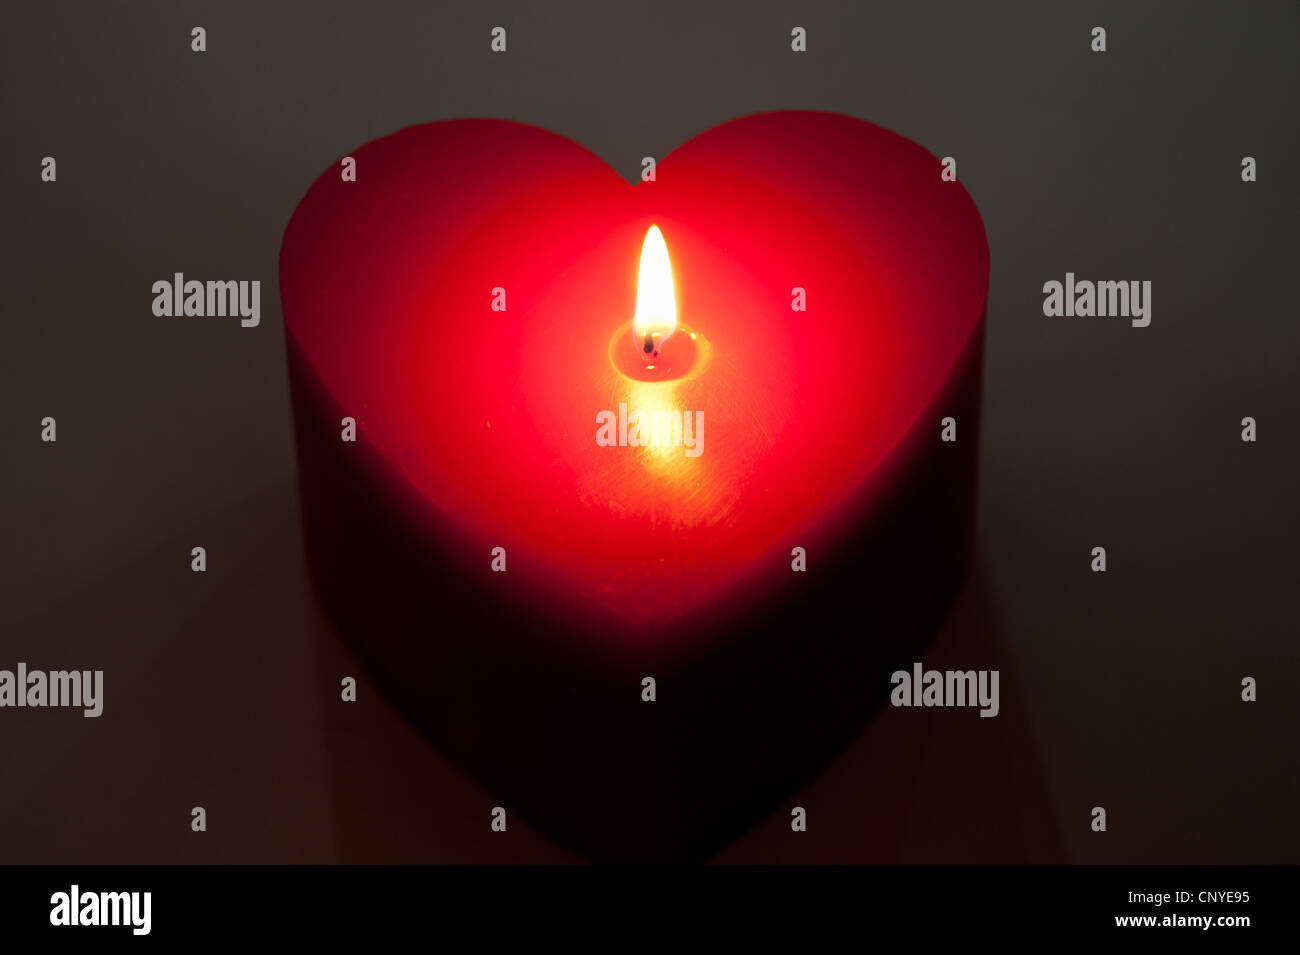 A red heart shaped candle, lit - Stock Image